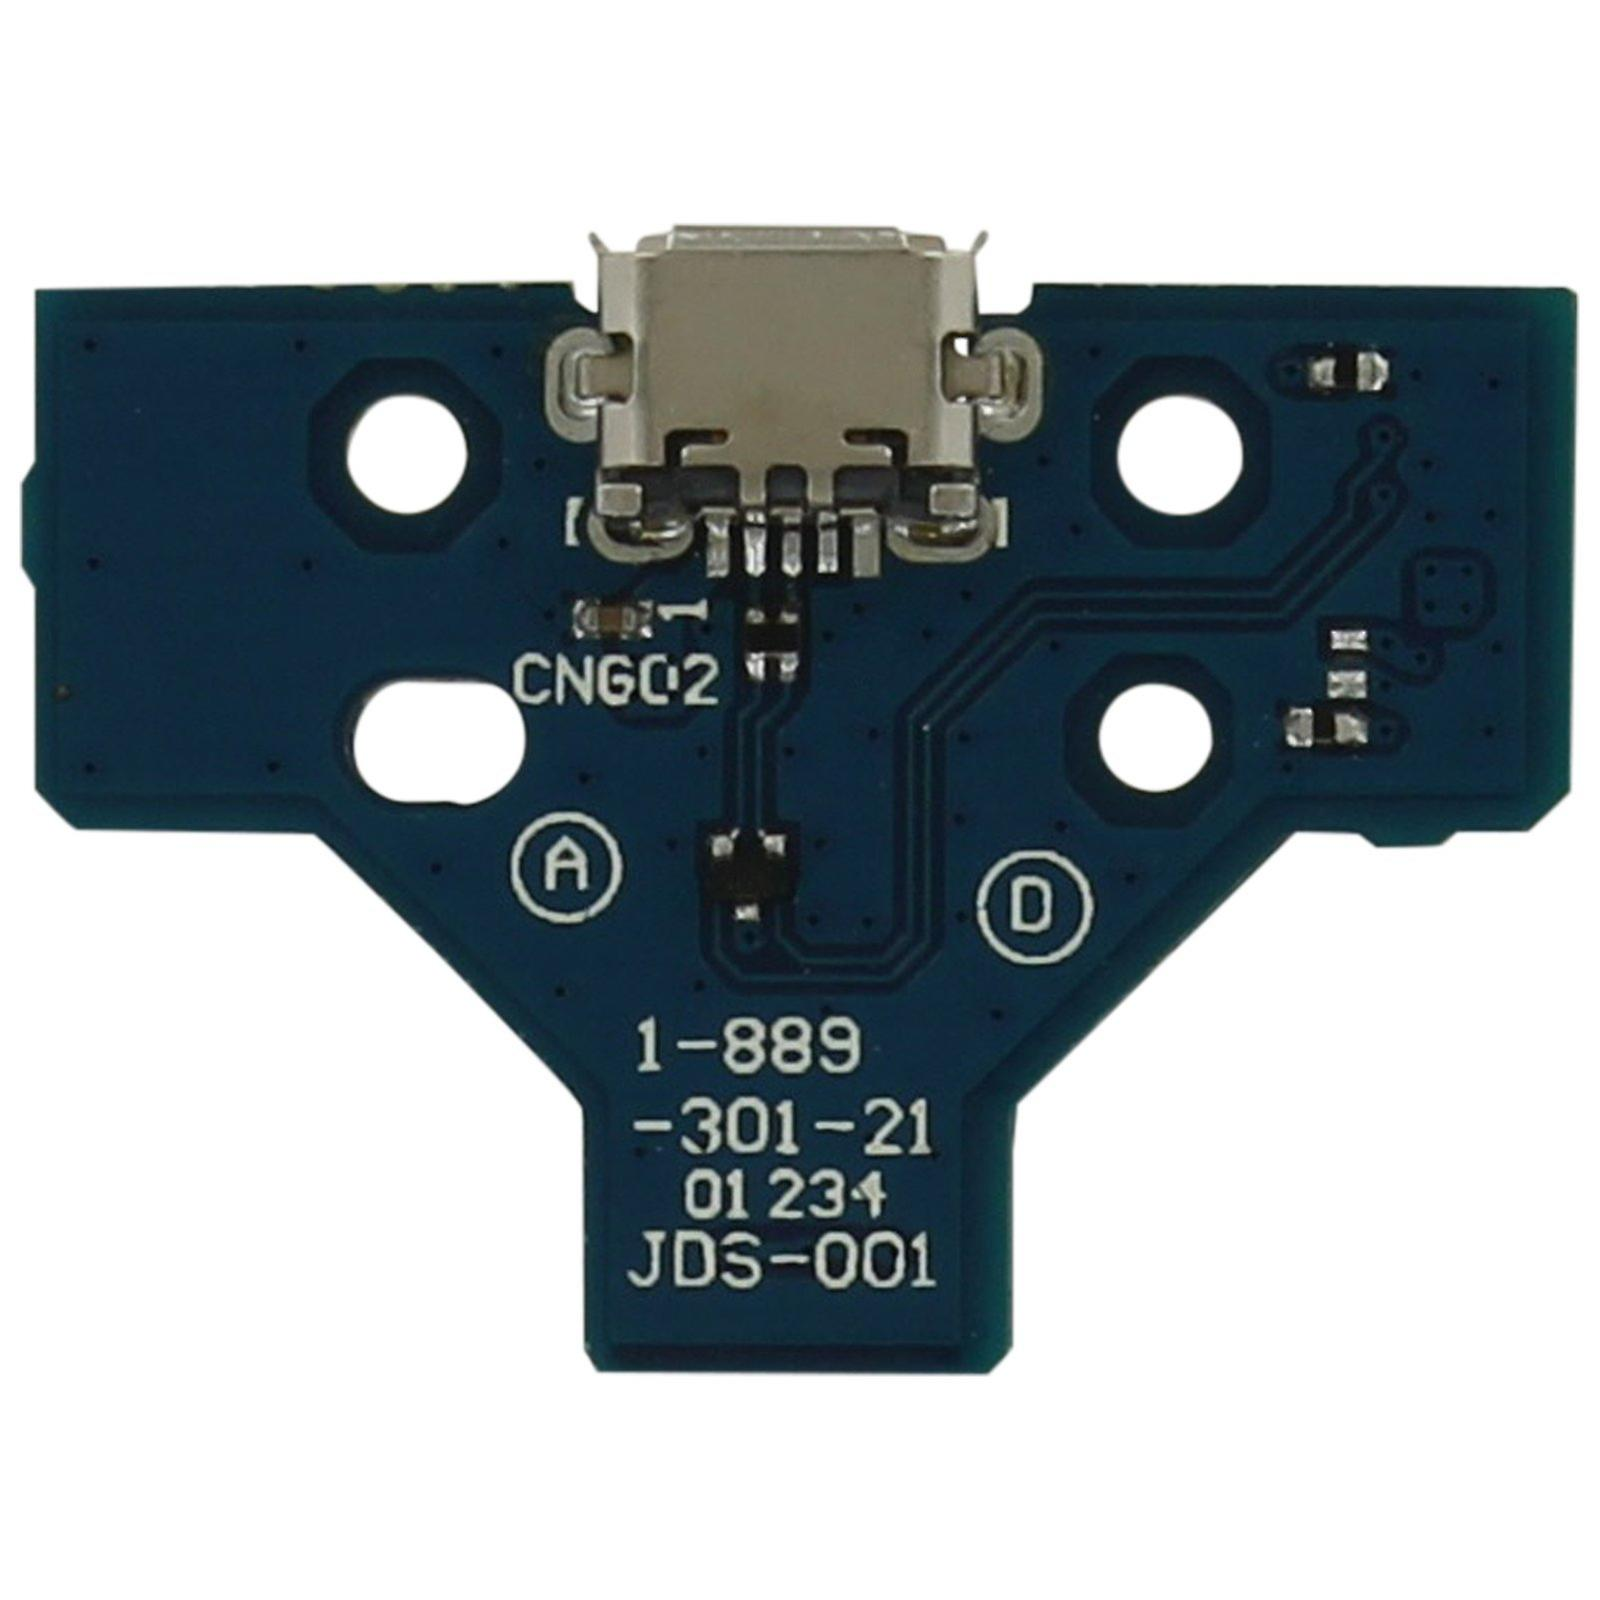 14 Pin v1 Micro USB Ladebuchse ic Board für sony ps4 Controller jds-001